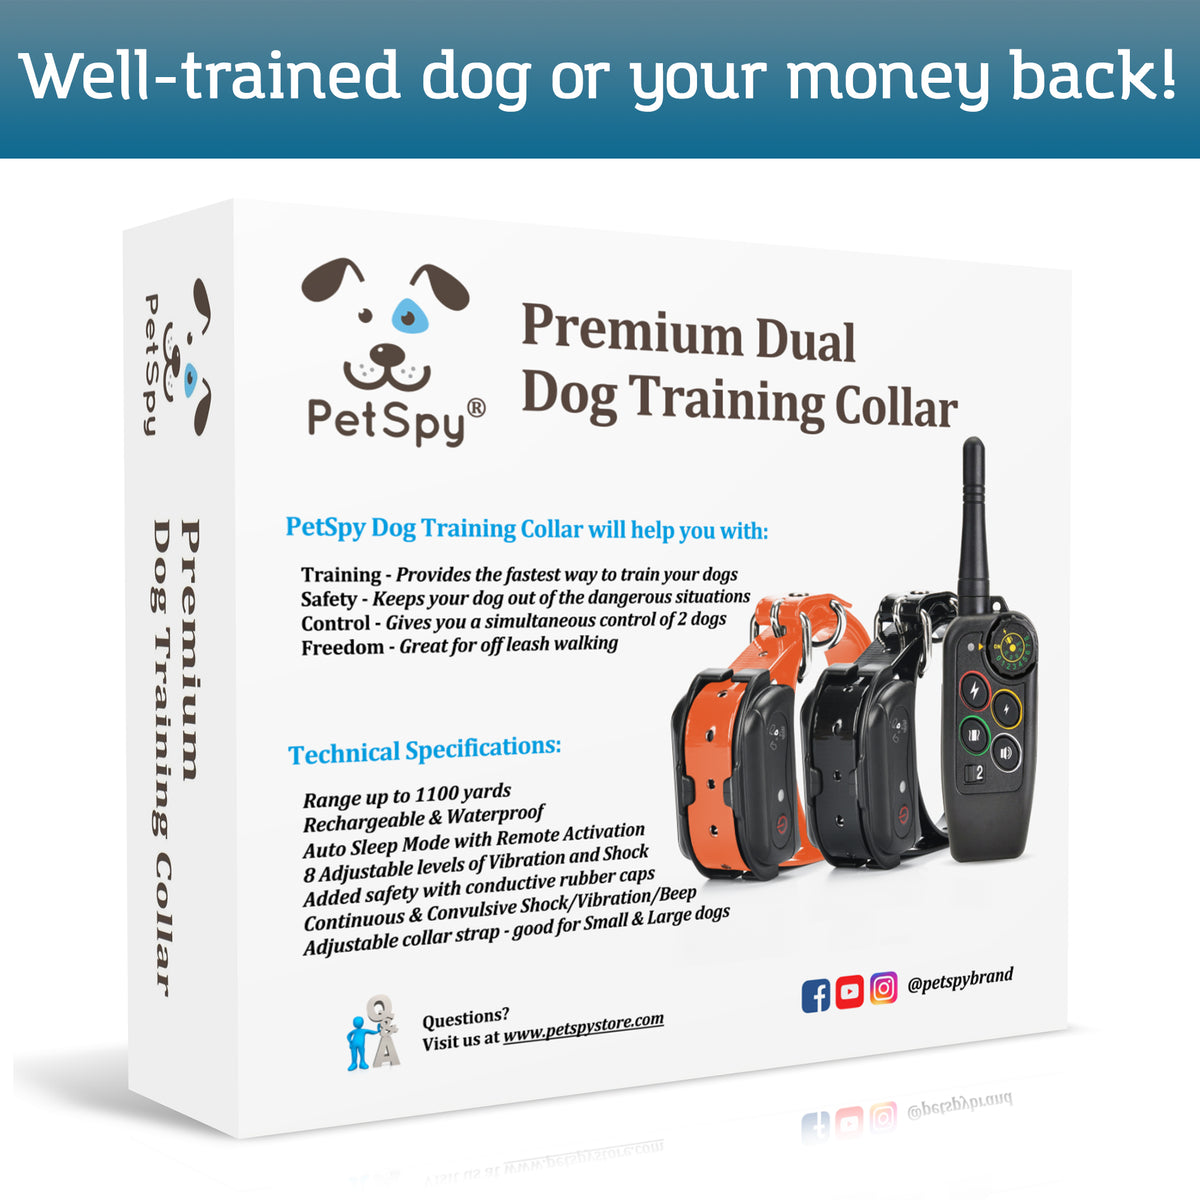 PetSpy M686B box. Well trained dog or your money back!